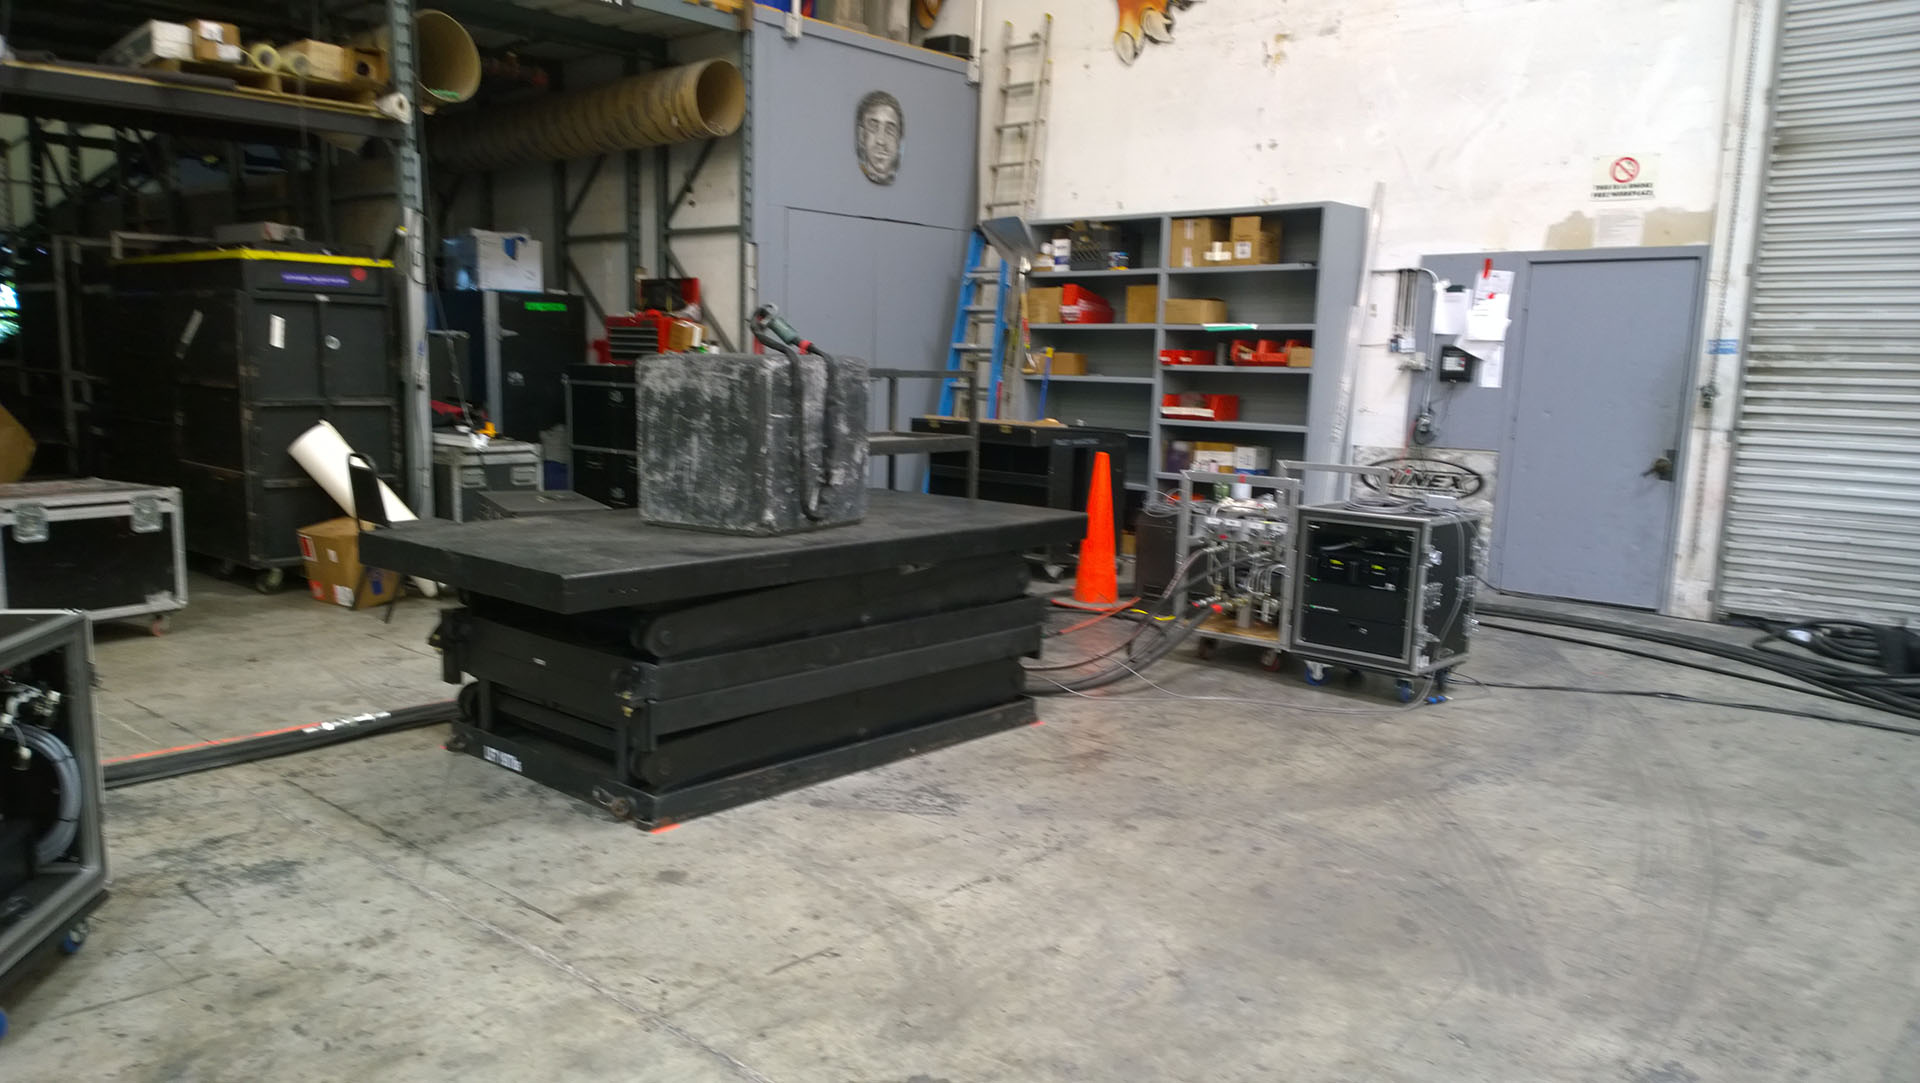 Stagehand Mini2 with lifts